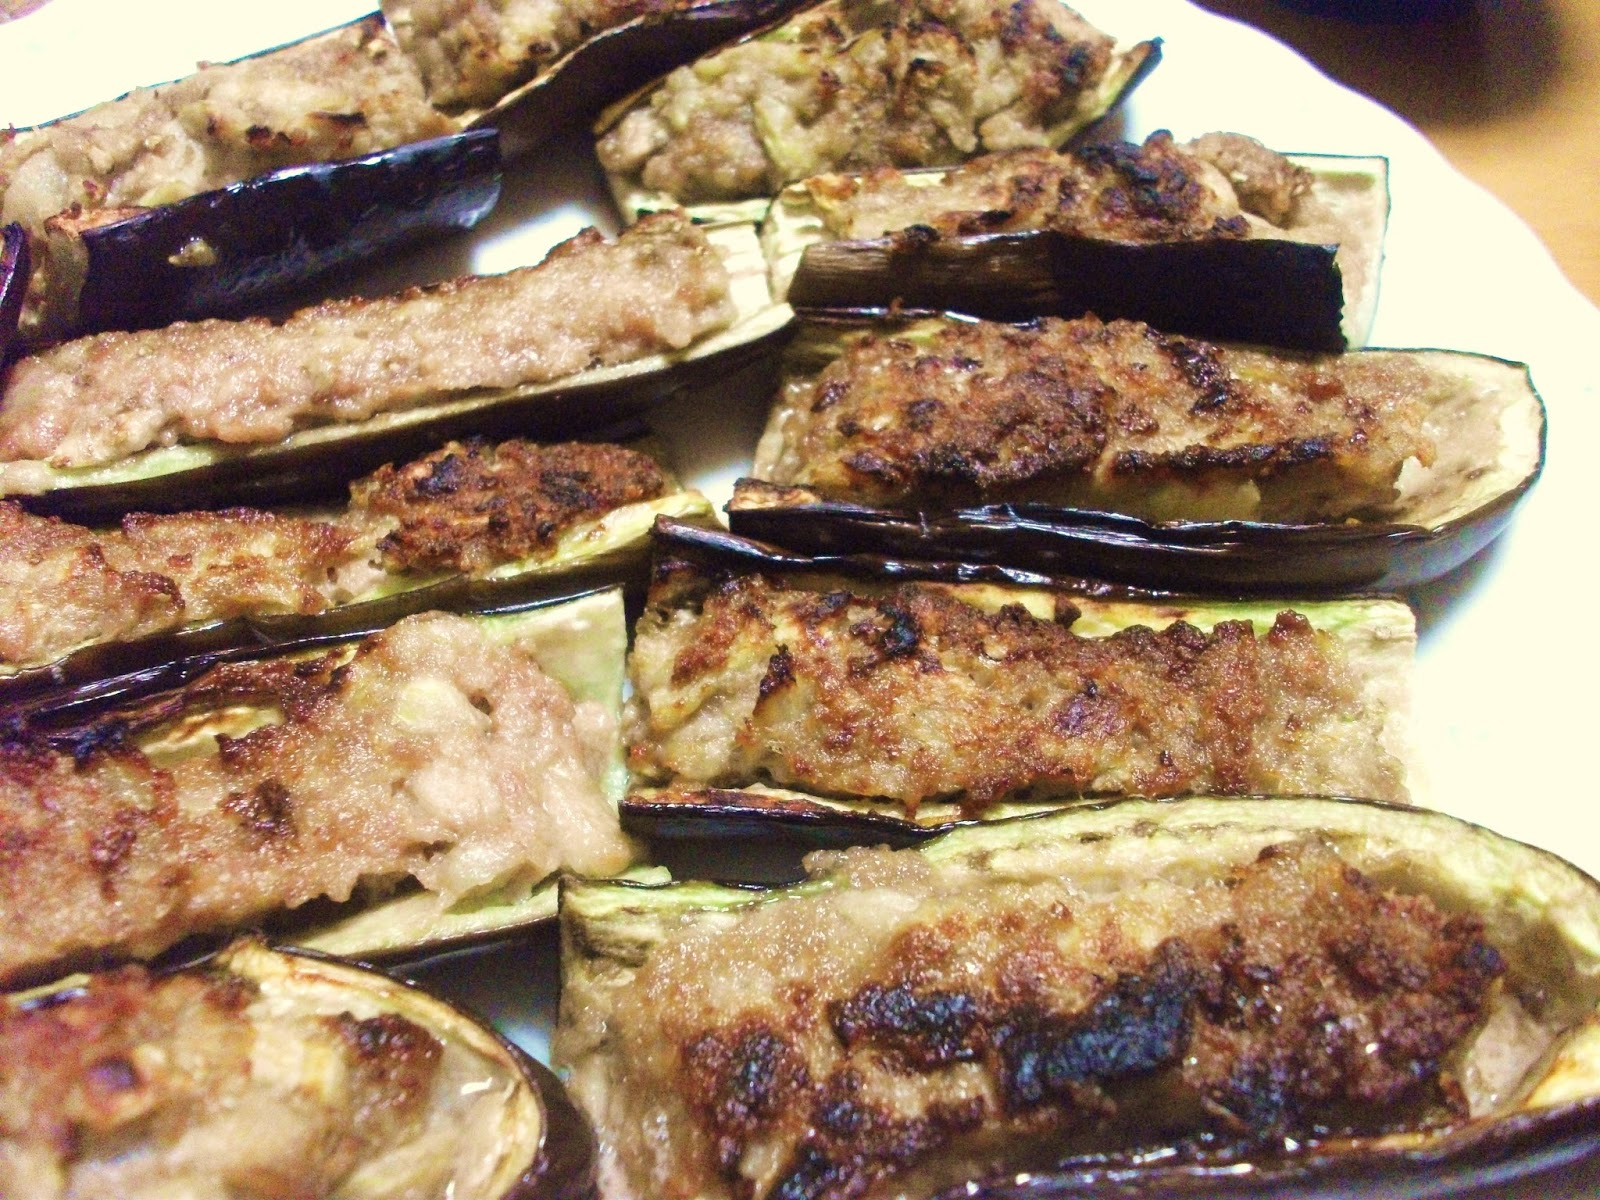 Japanese food recipes japanese stuffed green peppers and eggplant japanese stuffed green peppers and eggplant recipe forumfinder Image collections